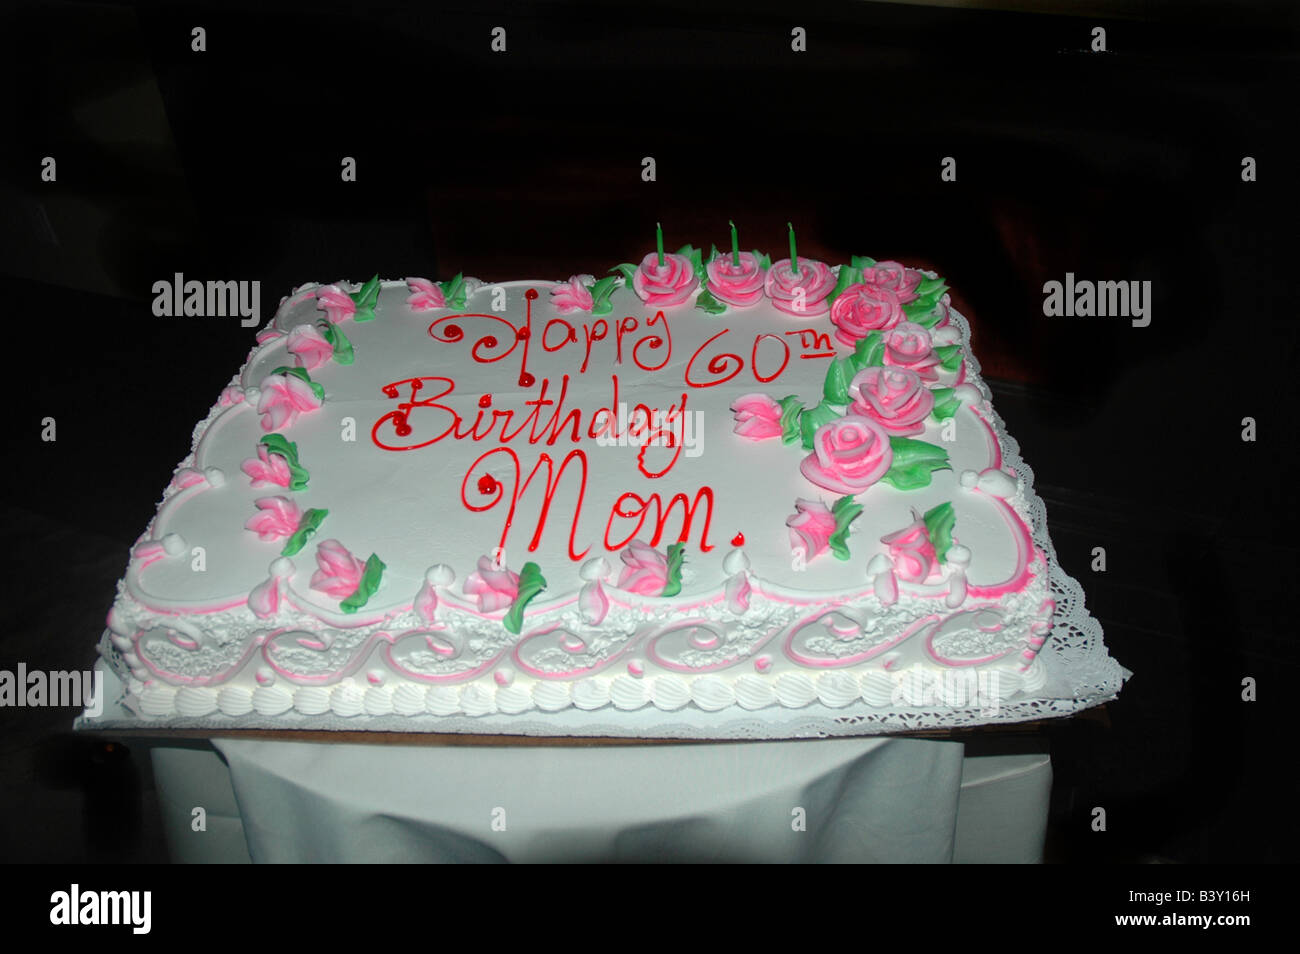 60th Birthday Cake High Resolution Stock Photography And Images Alamy